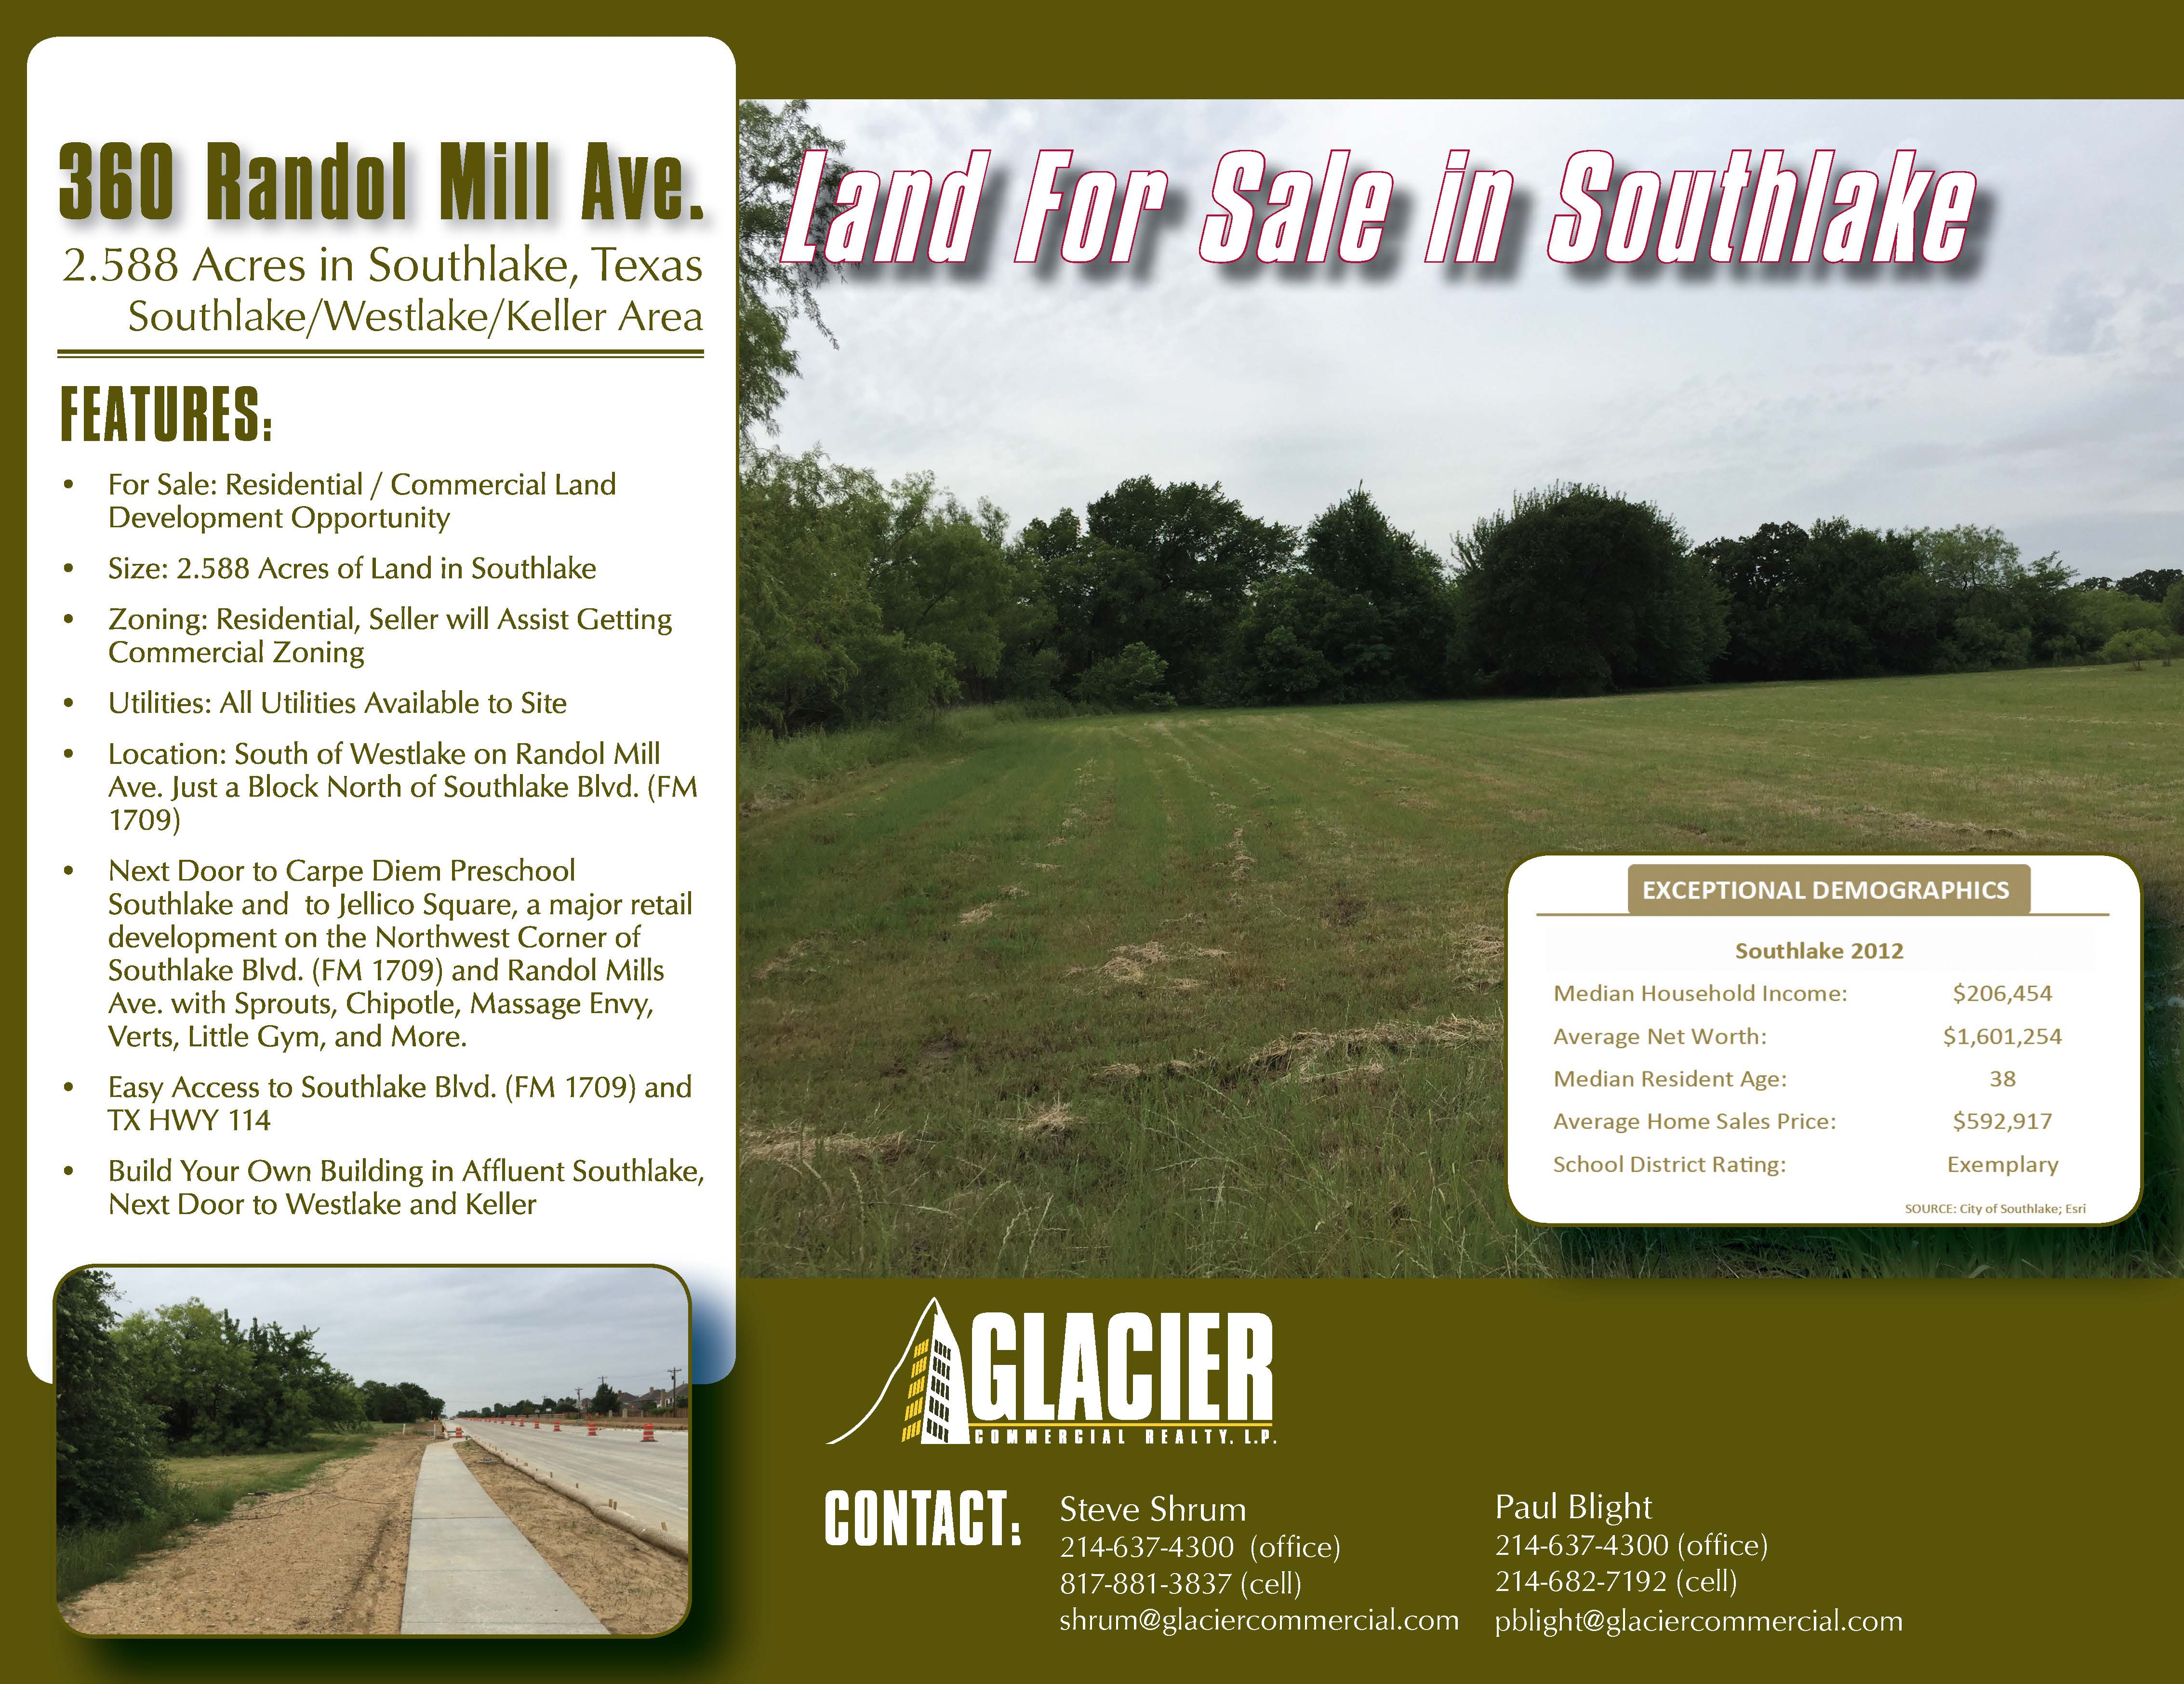 http://glaciercommercial.s3.amazonaws.com/production/photos/images/8545/original/360_Randol_Mill_Ave.Land_For_Sale_Flyer_Page_1.jpg?1463769861